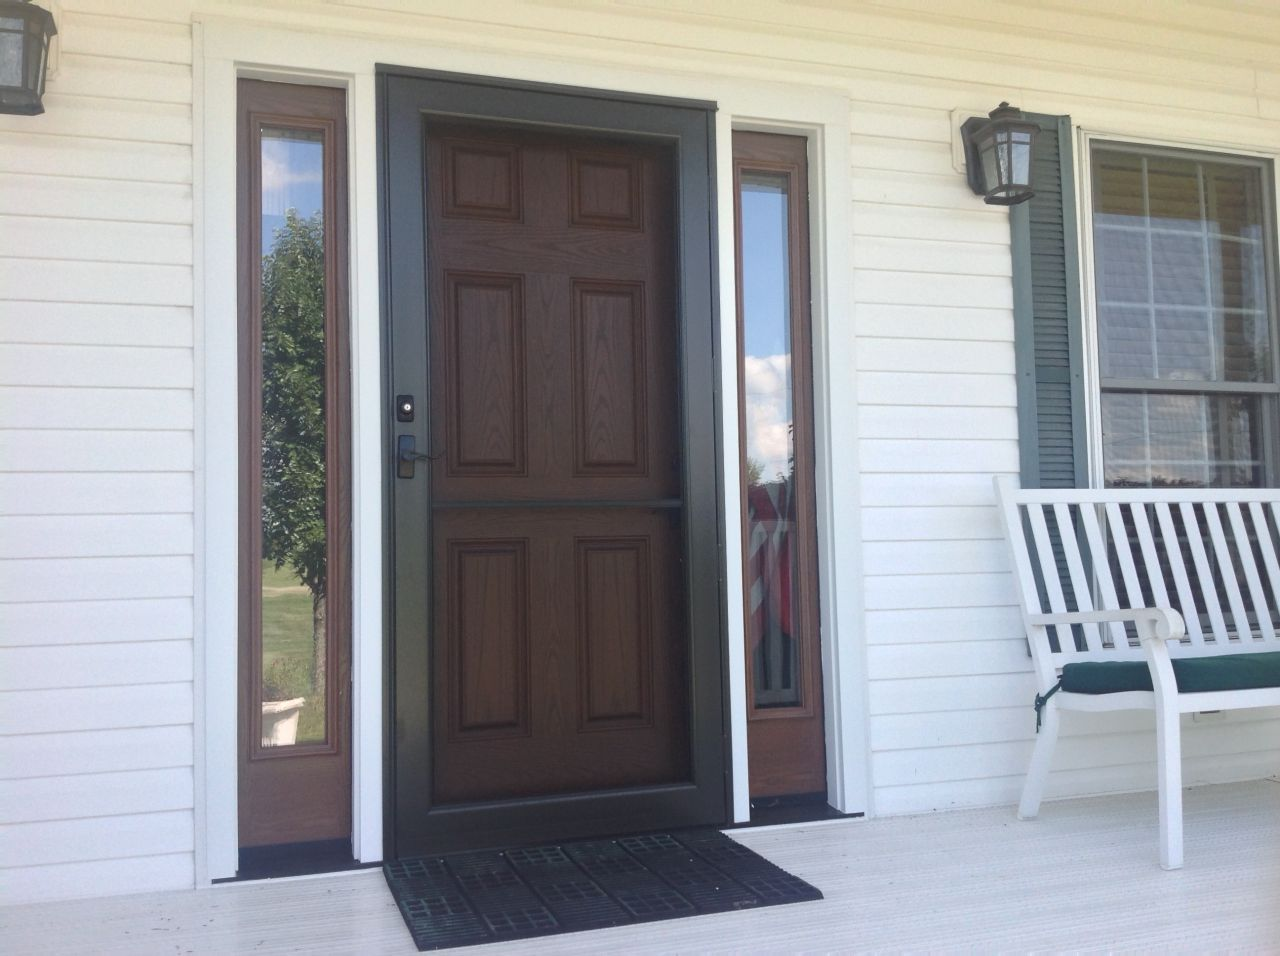 956 #897742 Storm Door With A Stabilizer Bar And Six Panel Fiberglass Door wallpaper Fiberglass Exterior Doors With Glass 39751280